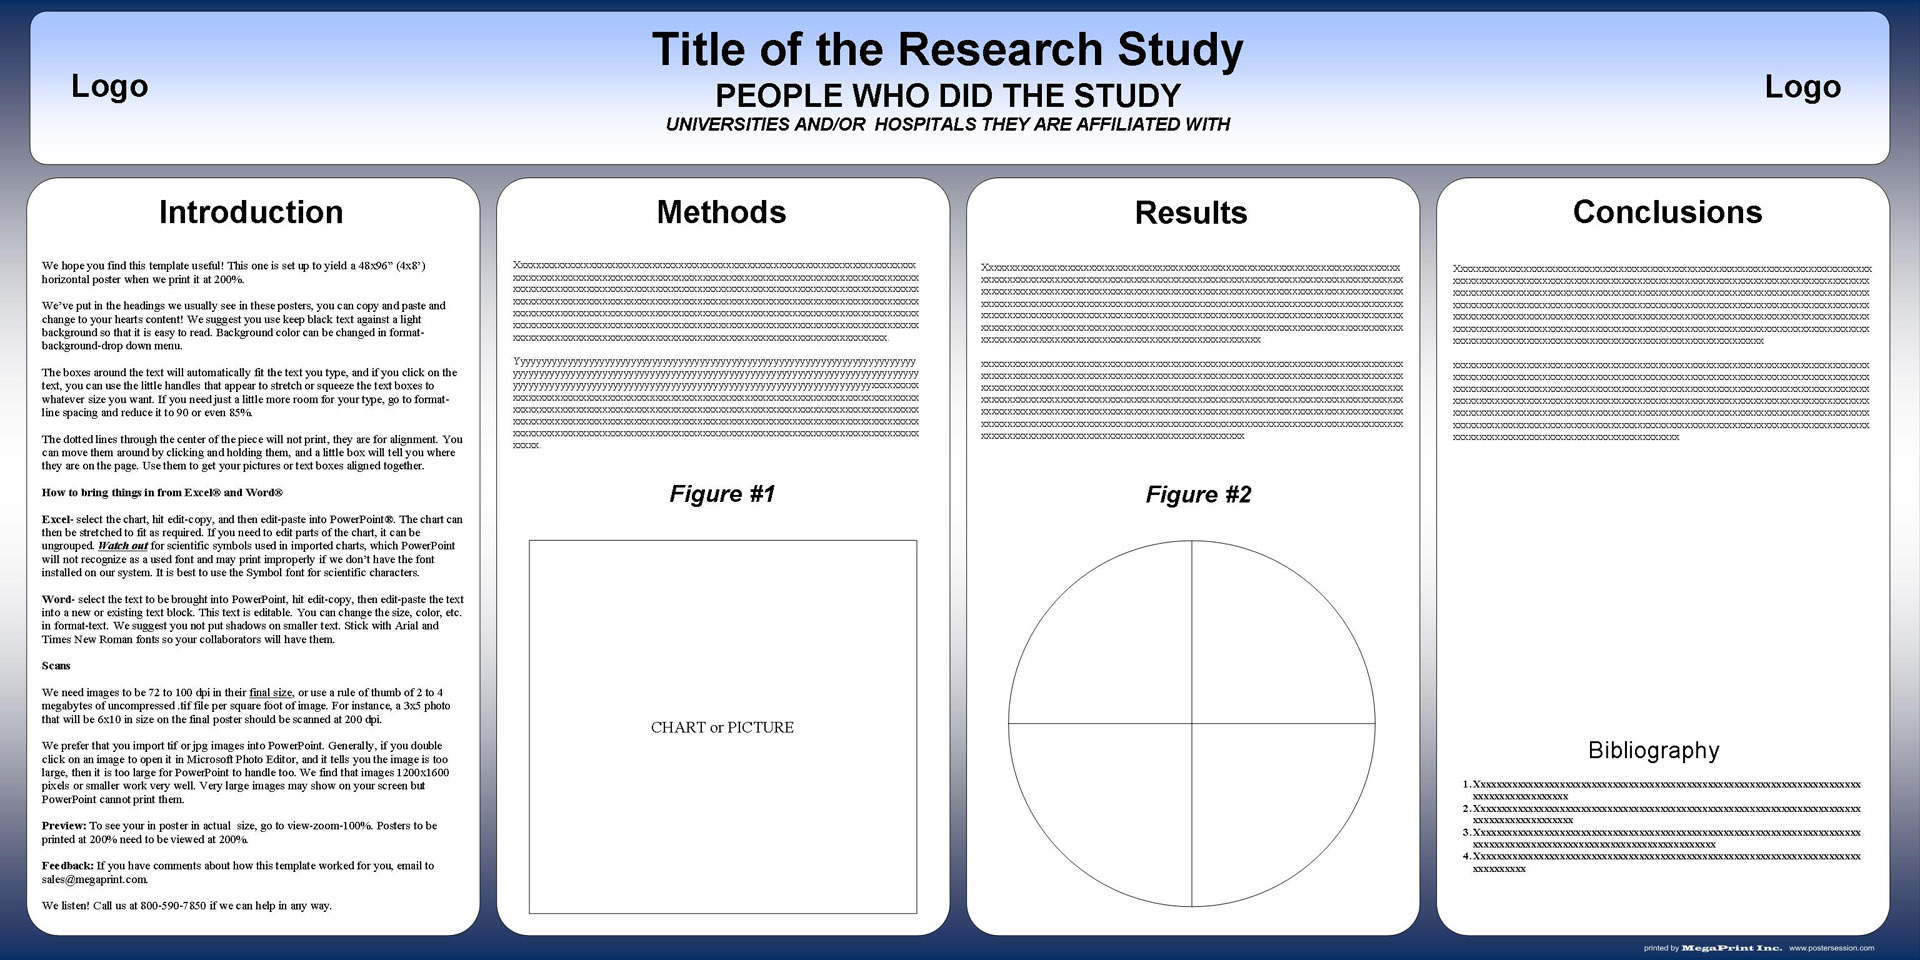 Free powerpoint scientific research poster templates for printing 48x96 academic poster template toneelgroepblik Choice Image